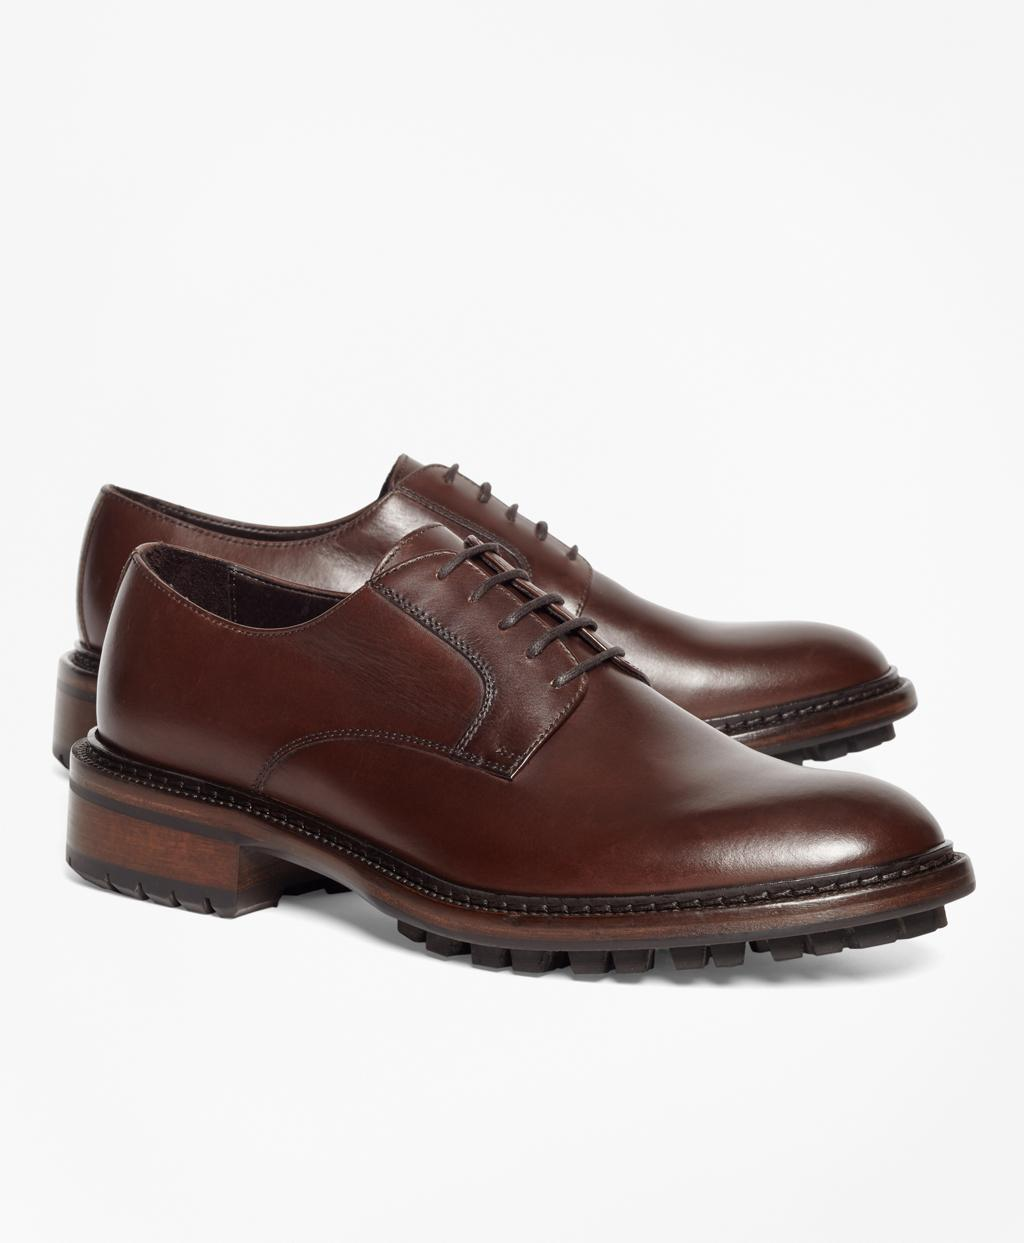 Lyst - Brooks Brothers Derby Shoes in Brown for Men - Save 25% 72c3935a84f